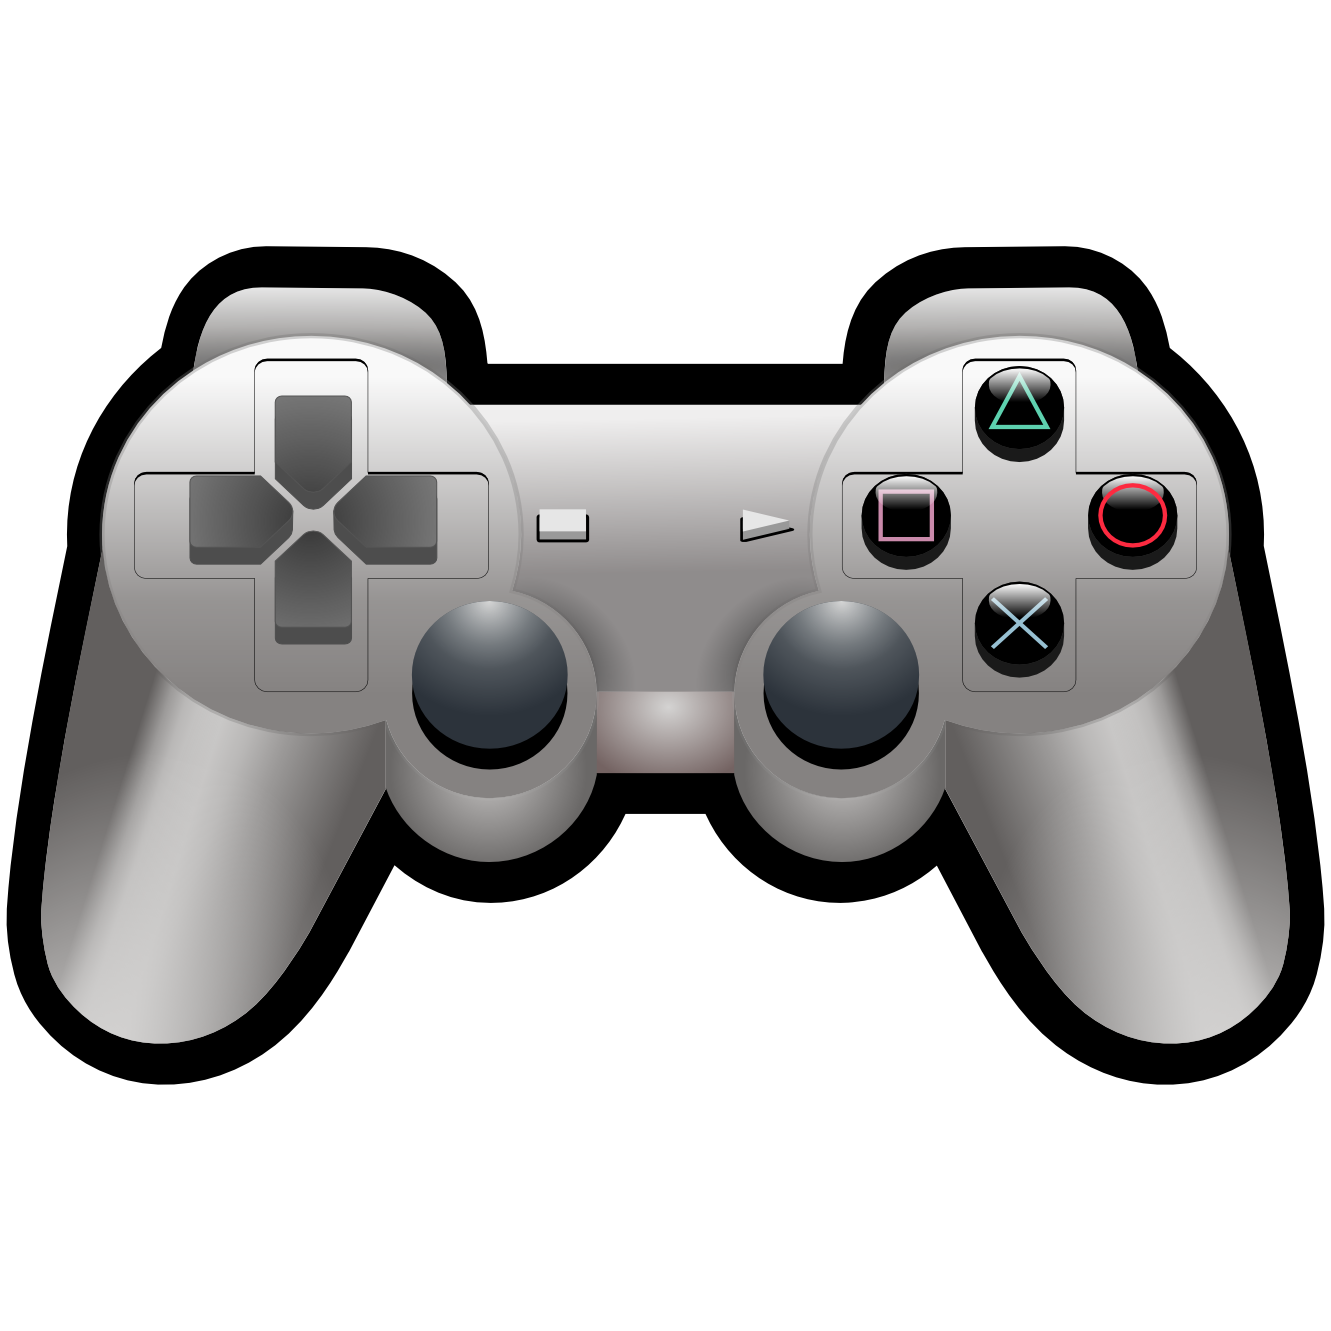 Similiar Playstation Game Controller Clip Art Keywords.